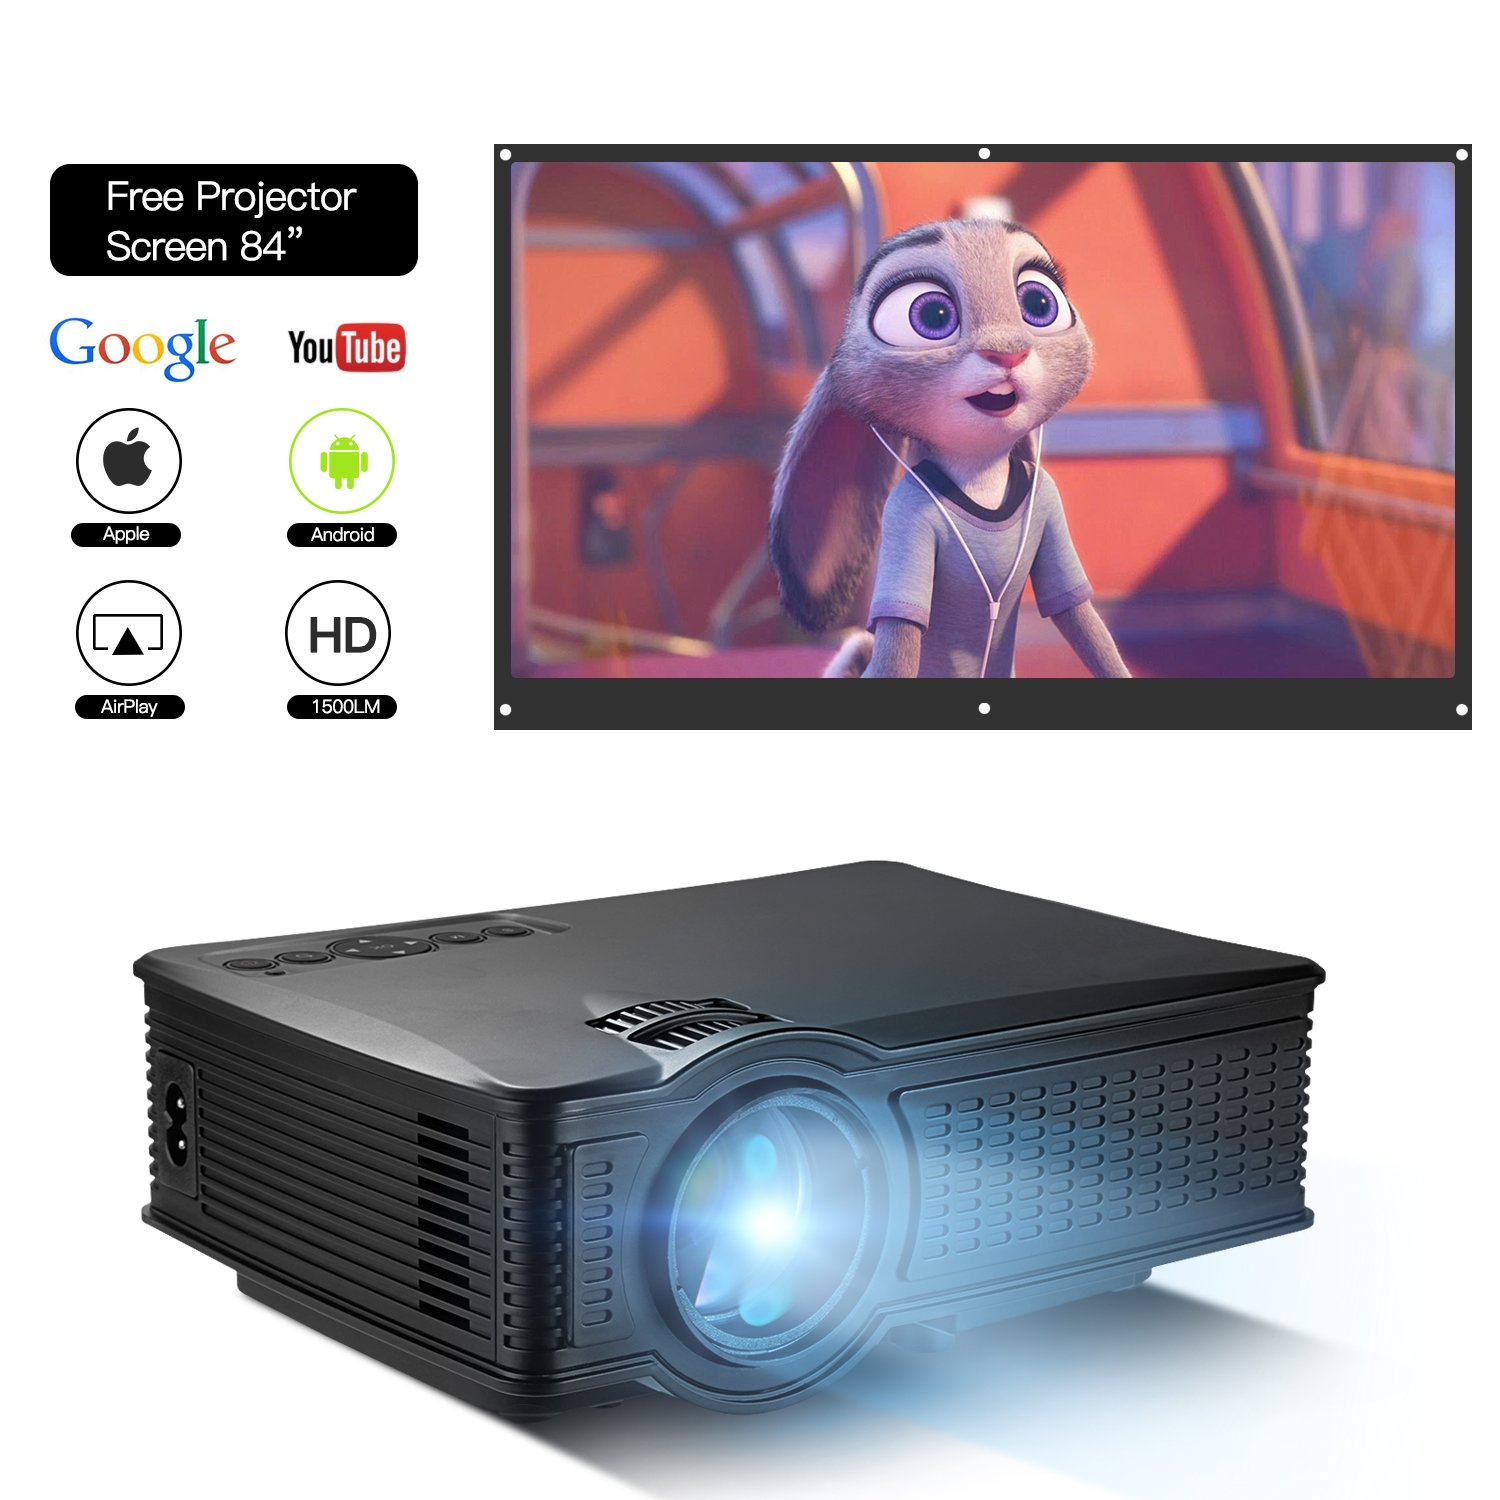 DOACE P1 HD 1080P Video Projector Indoor Outdoor with Portable Projector Screen 84'', Home Theater Projector Support USB SD Card VGA AV for Home Cinema TV Laptop Game Smartphone with Free AV Cable